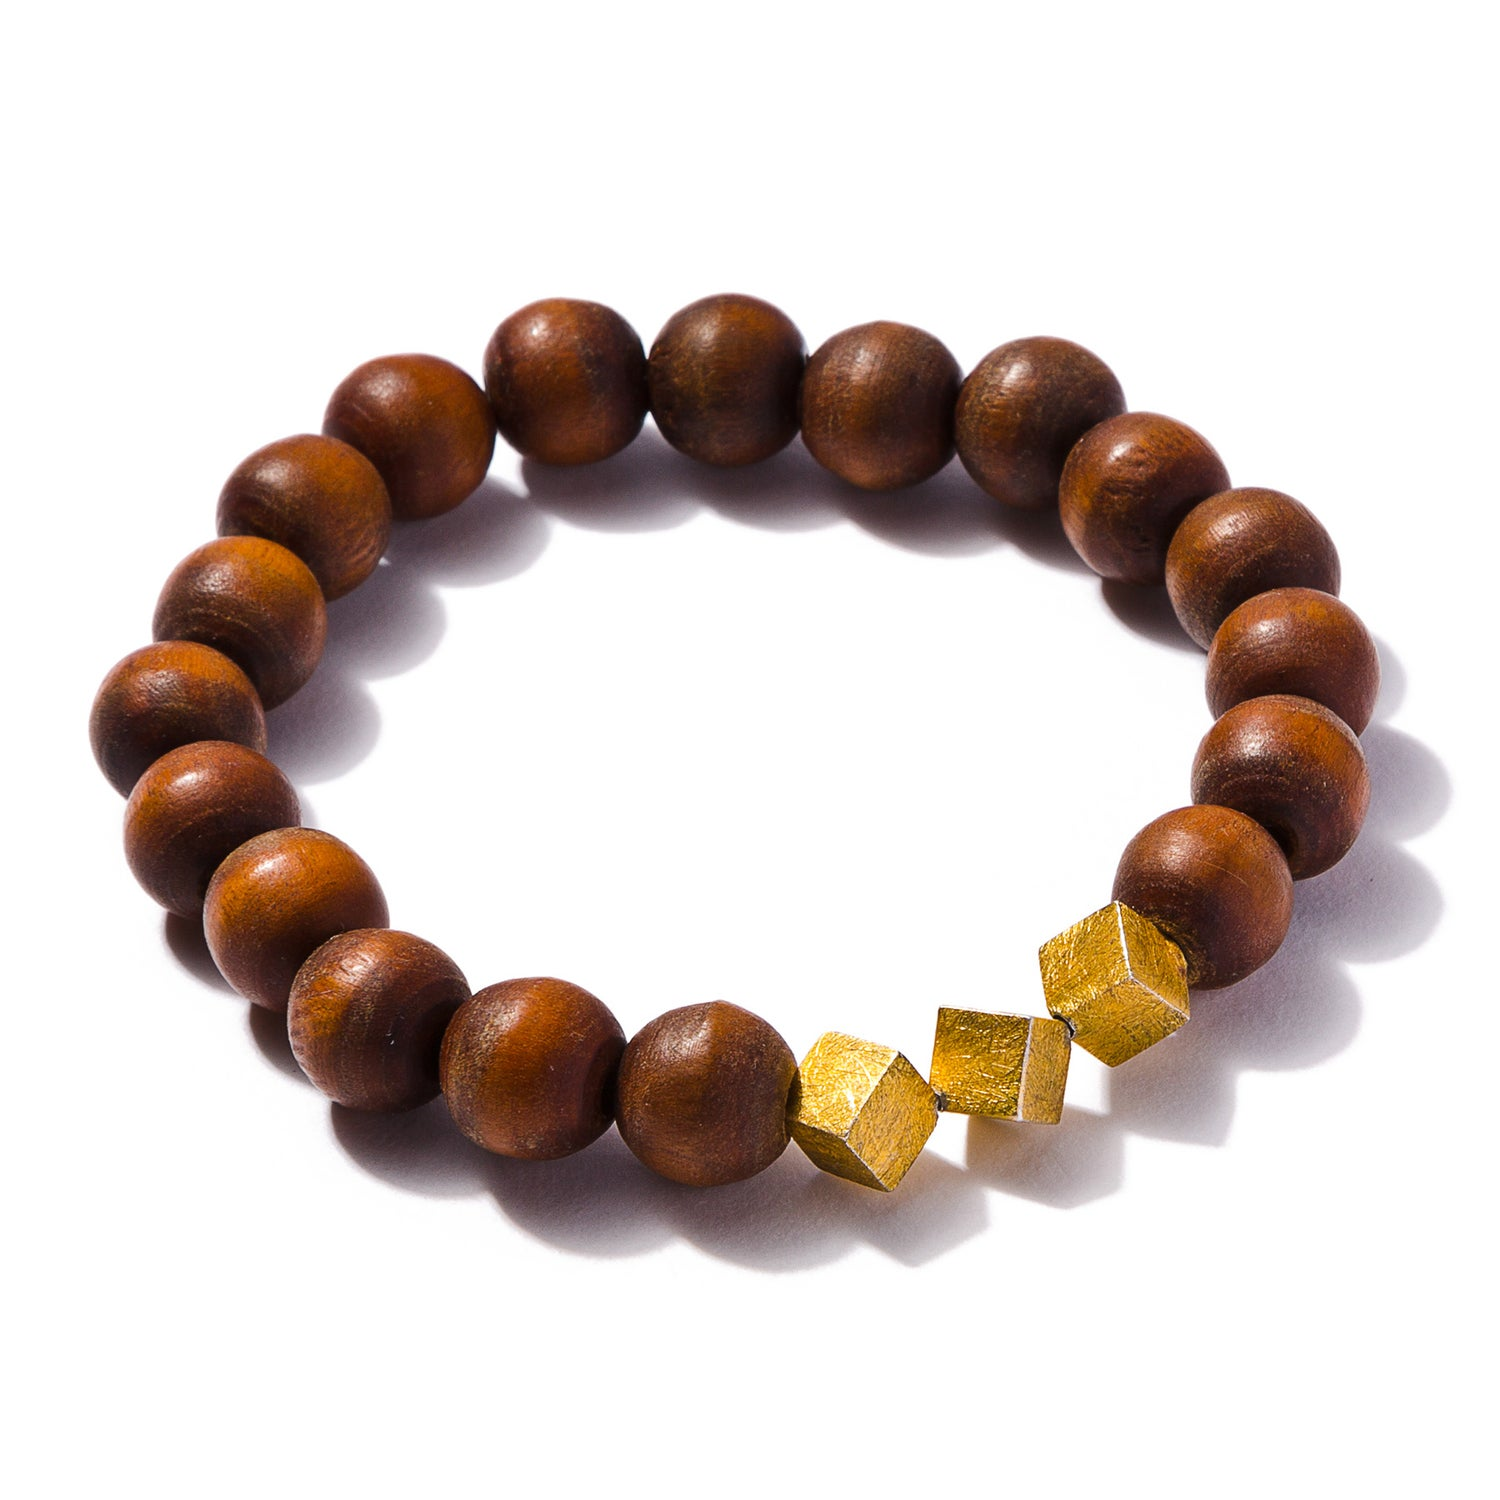 Image of Three 14K Gold Plated Squares with Wood Beads